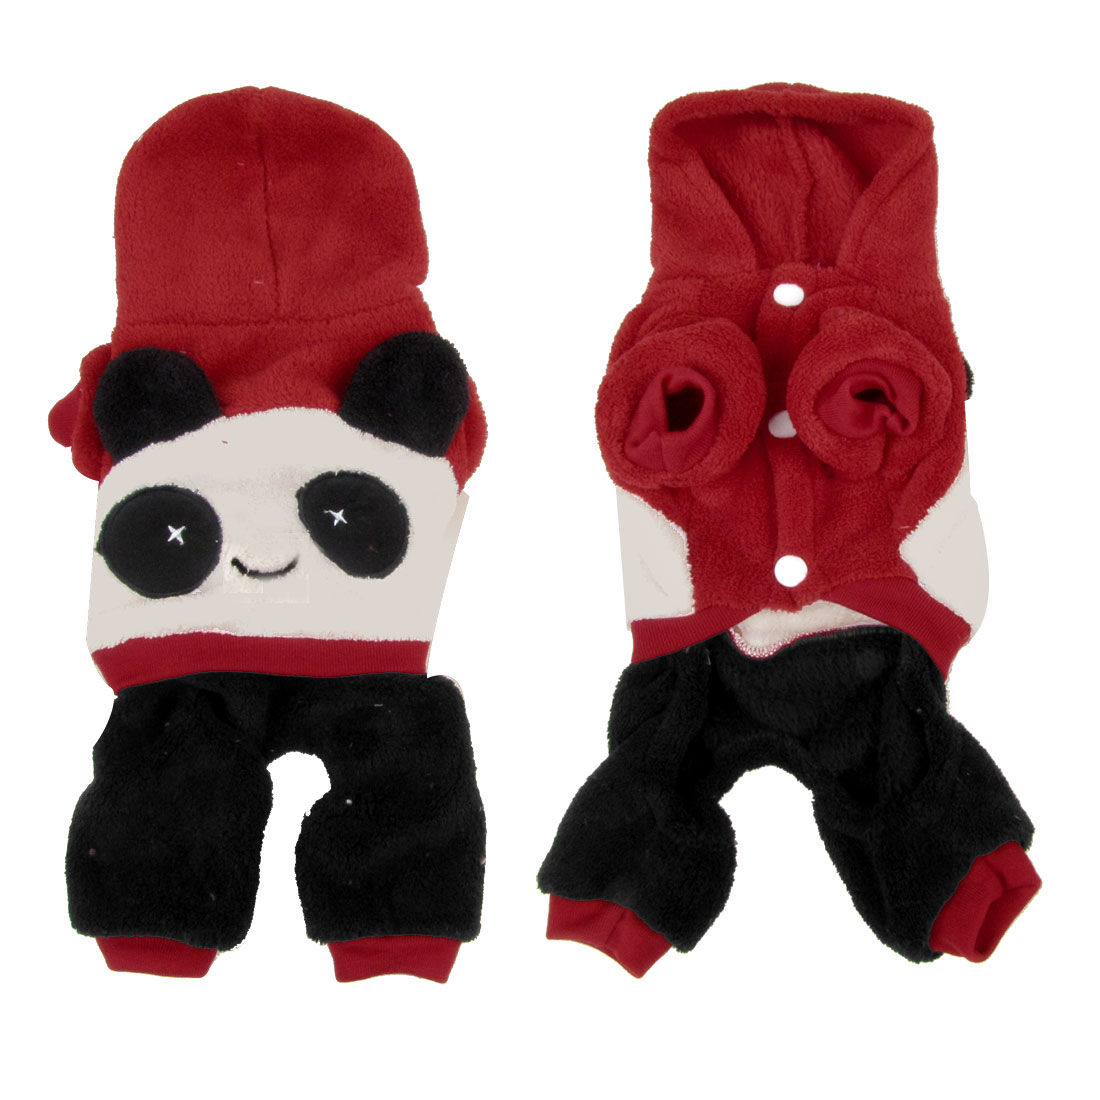 Warm Hooded Panda Shaped Chihuahua Pet Dog Cat Apparel Clothes Jumpsuit Red XS